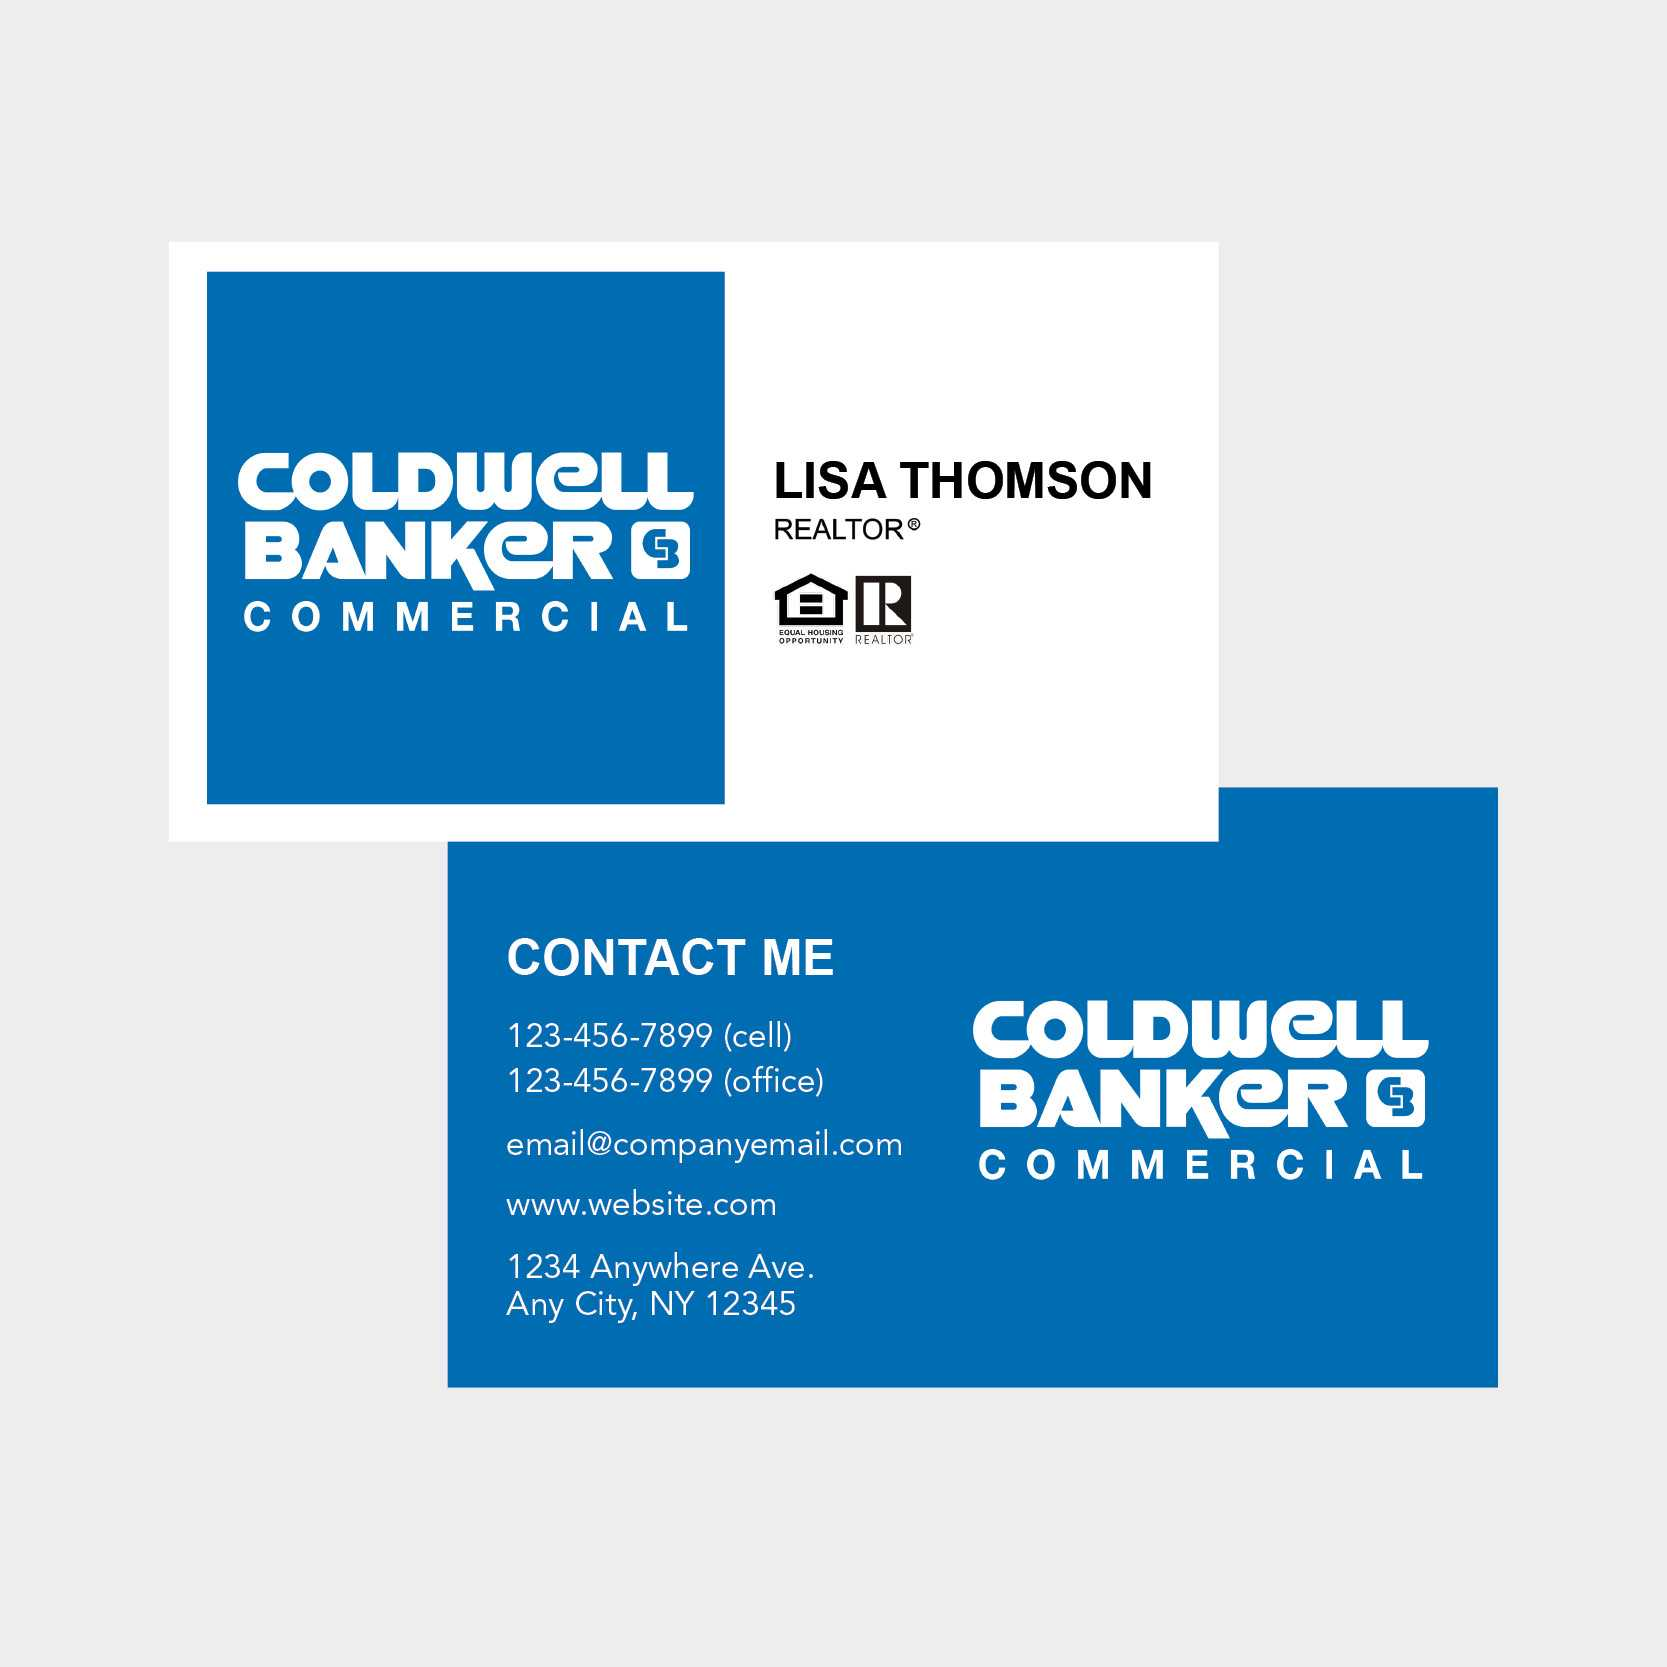 Coldwell Banker Business Cards Intended For Coldwell Banker Business Card Template